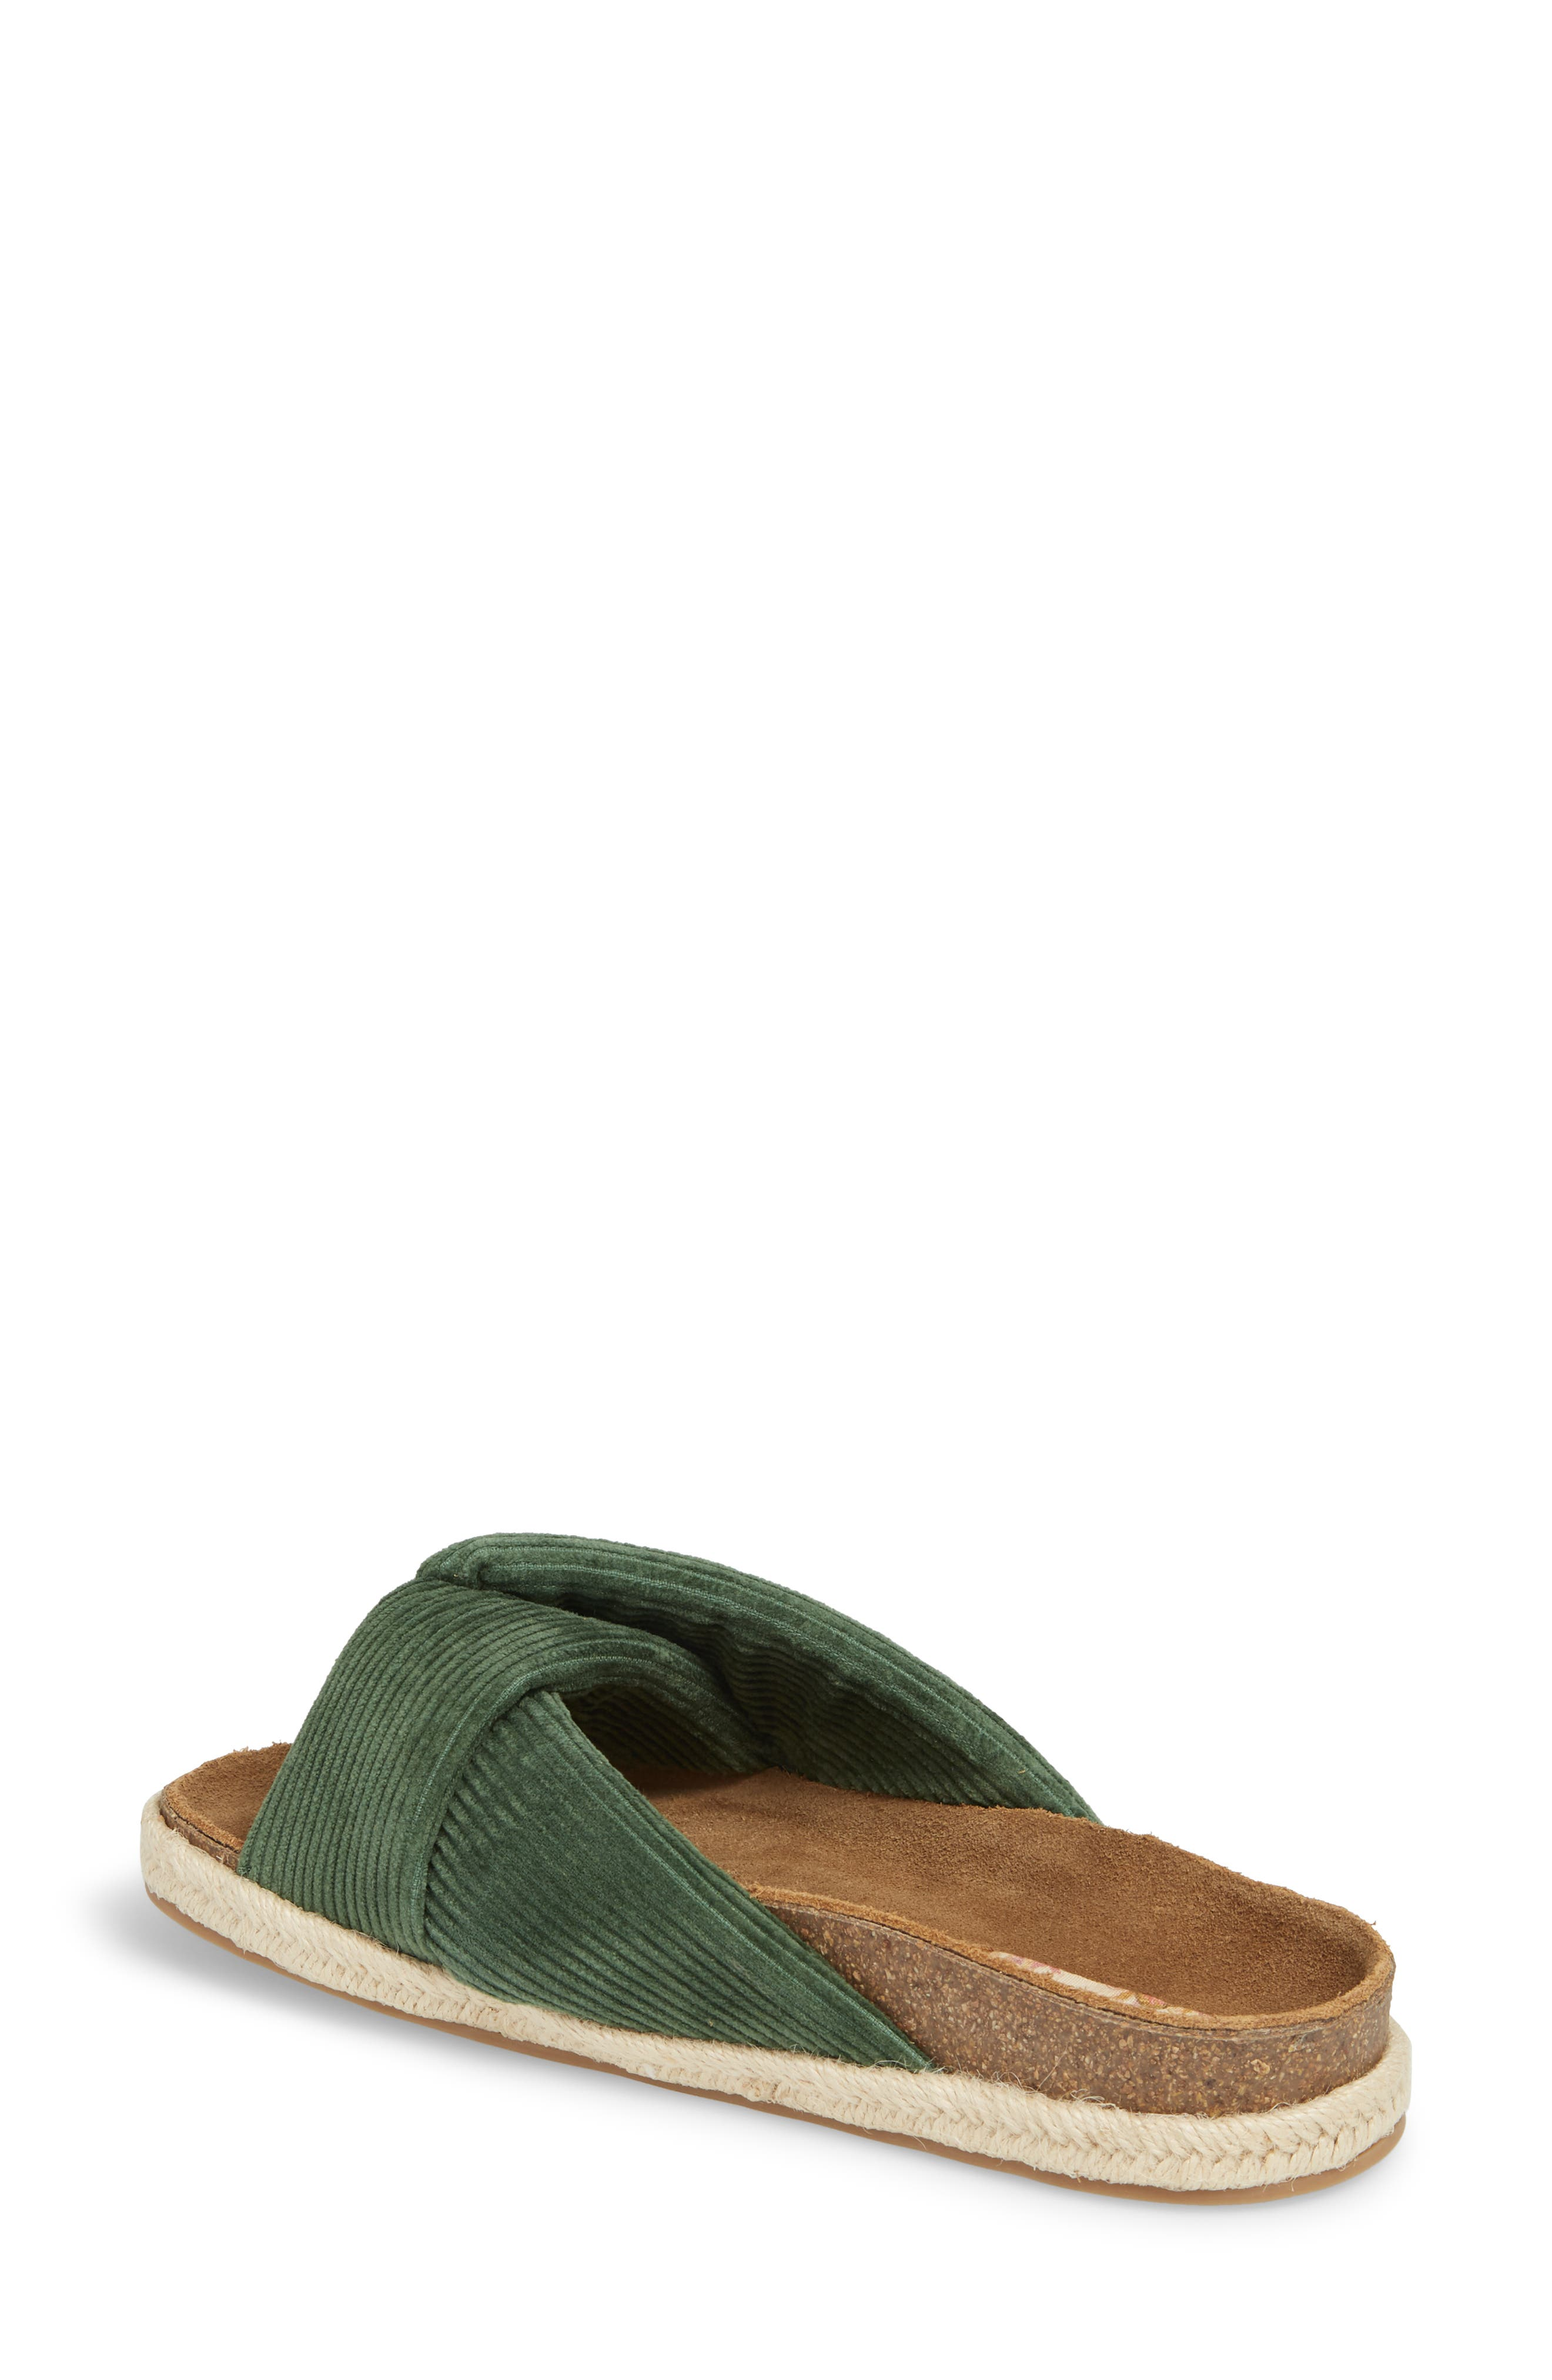 Move Over Flat Sandal,                             Alternate thumbnail 2, color,                             OLIVE